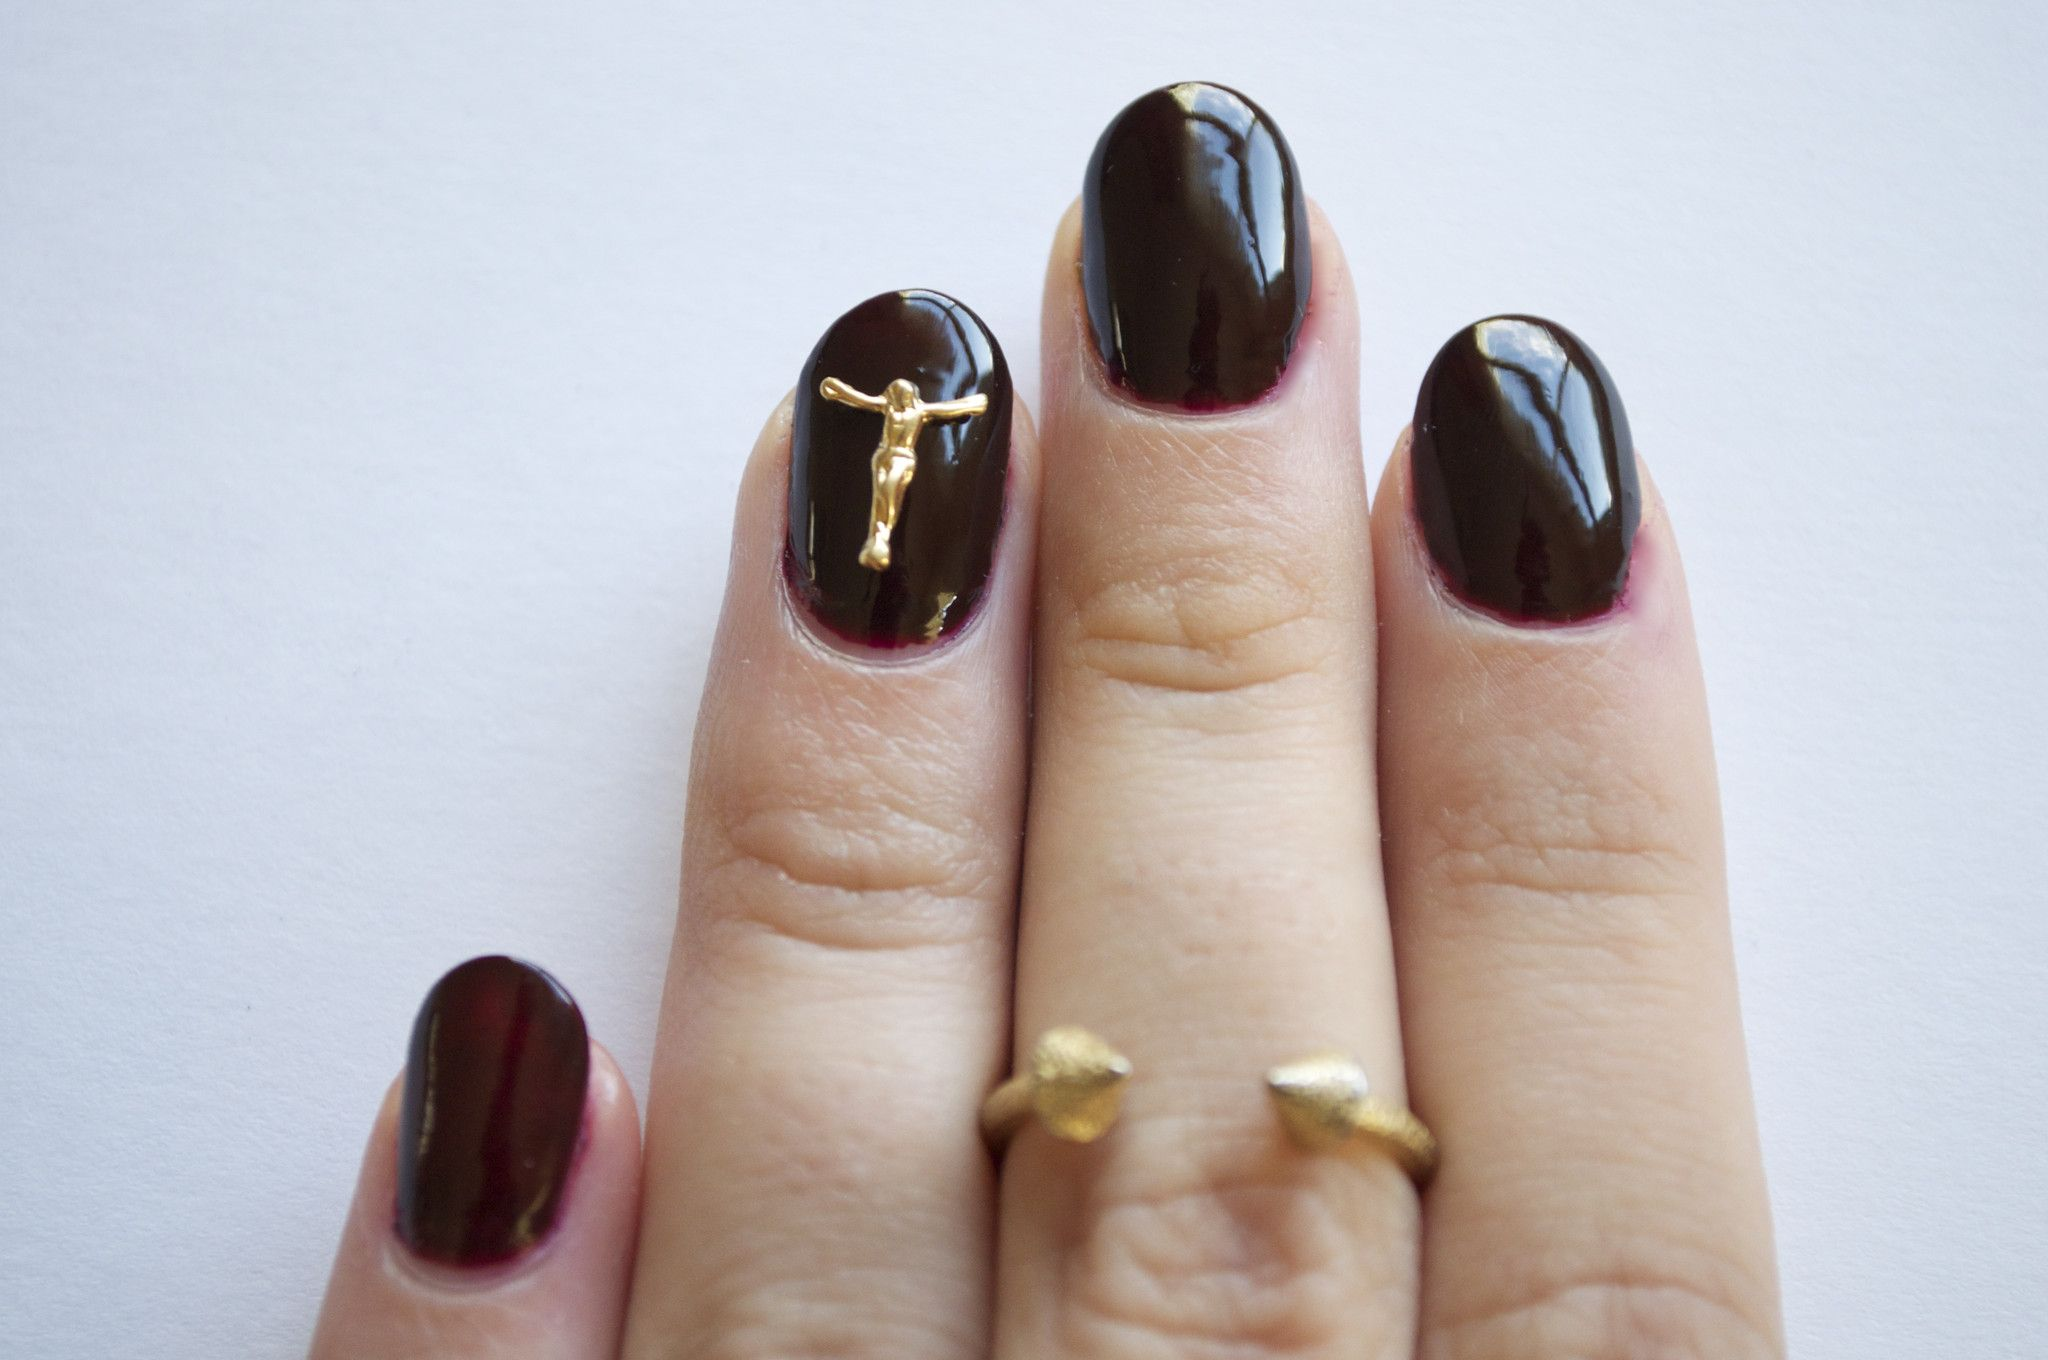 Crucifix from Hex Nail Jewelry